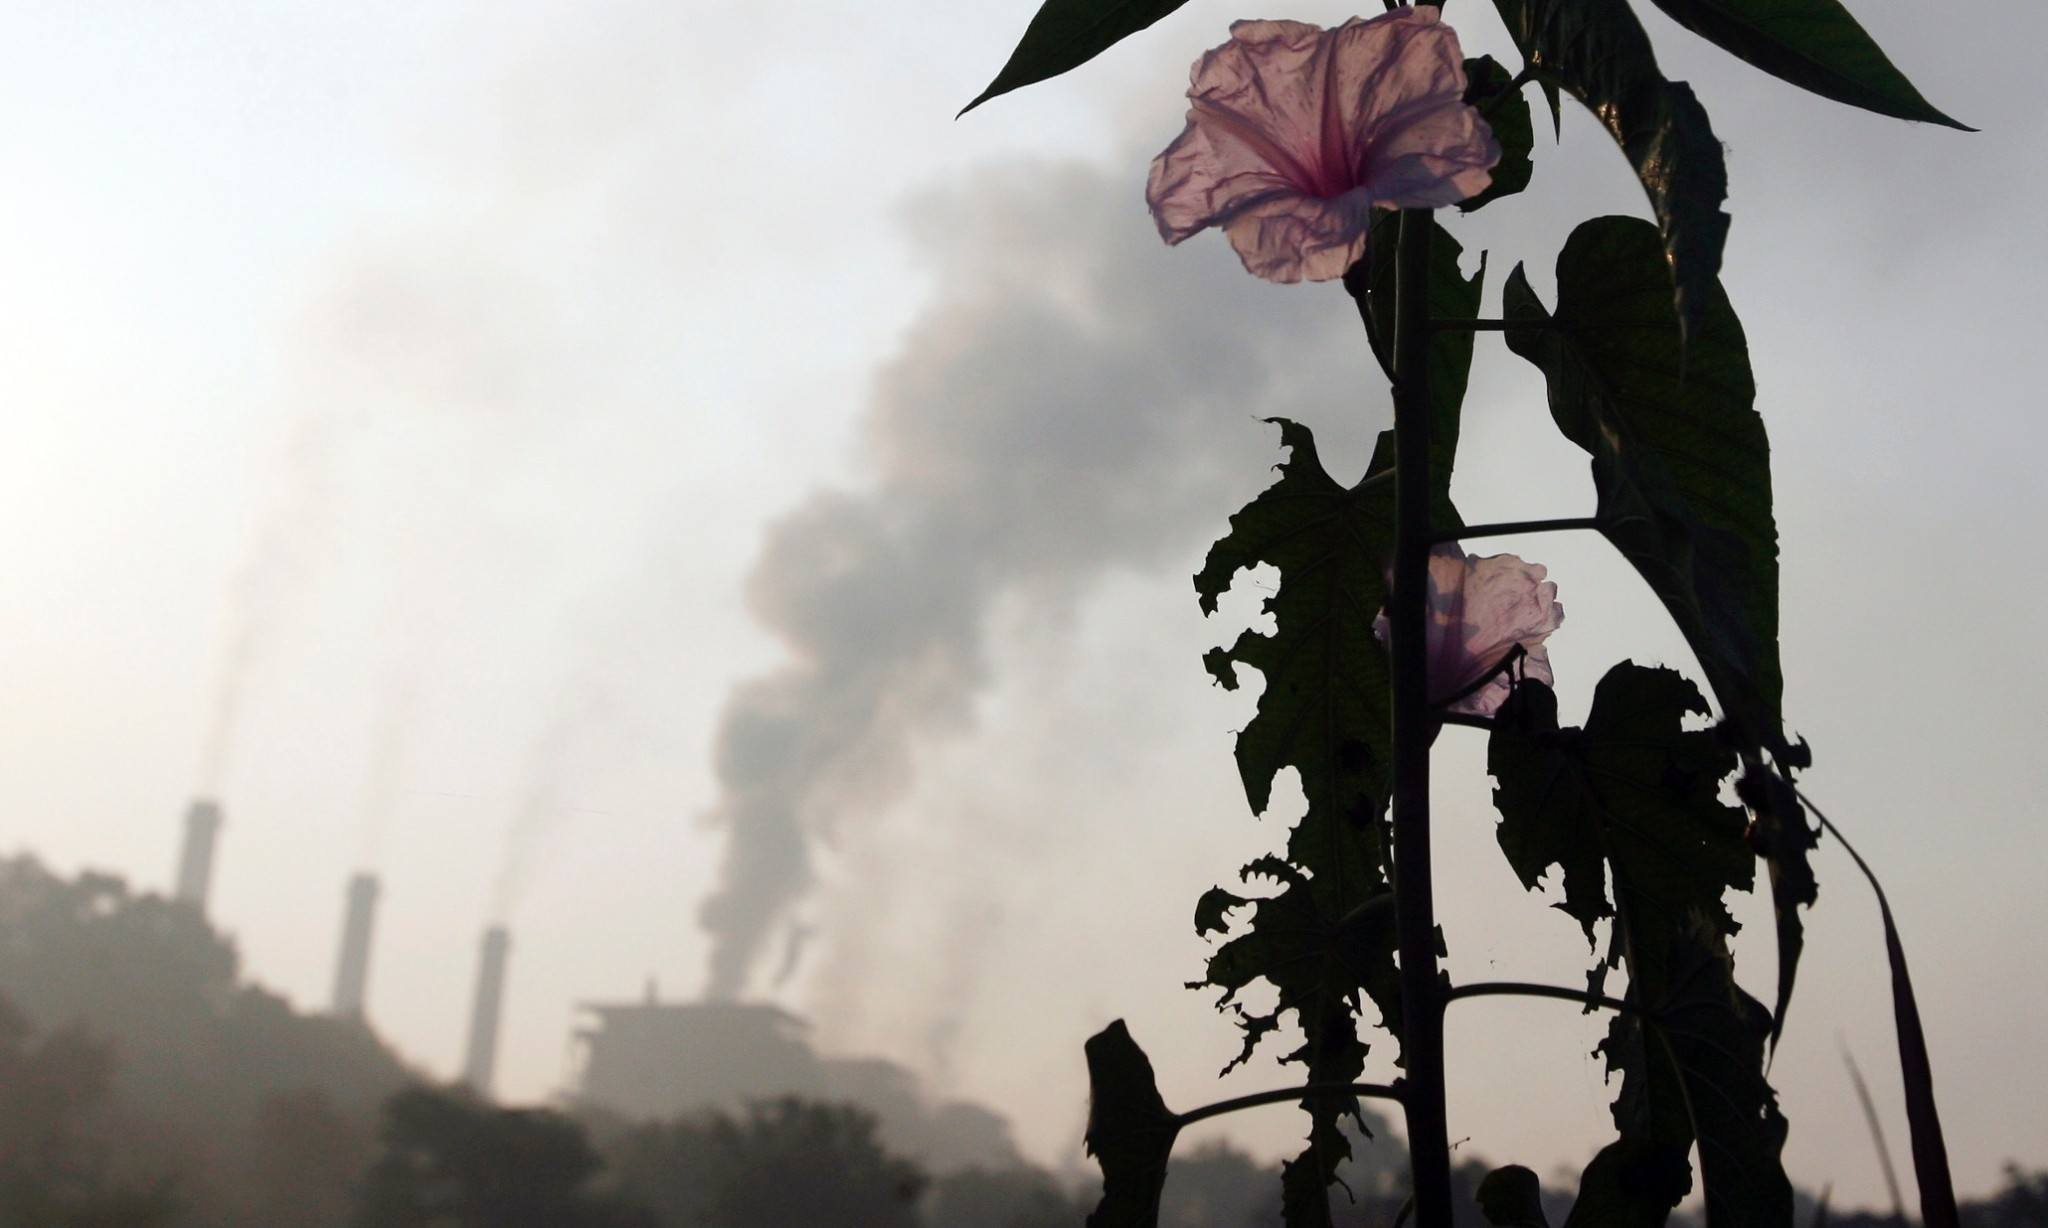 The UN climate summit reveals India's hypocrisy on saving forests